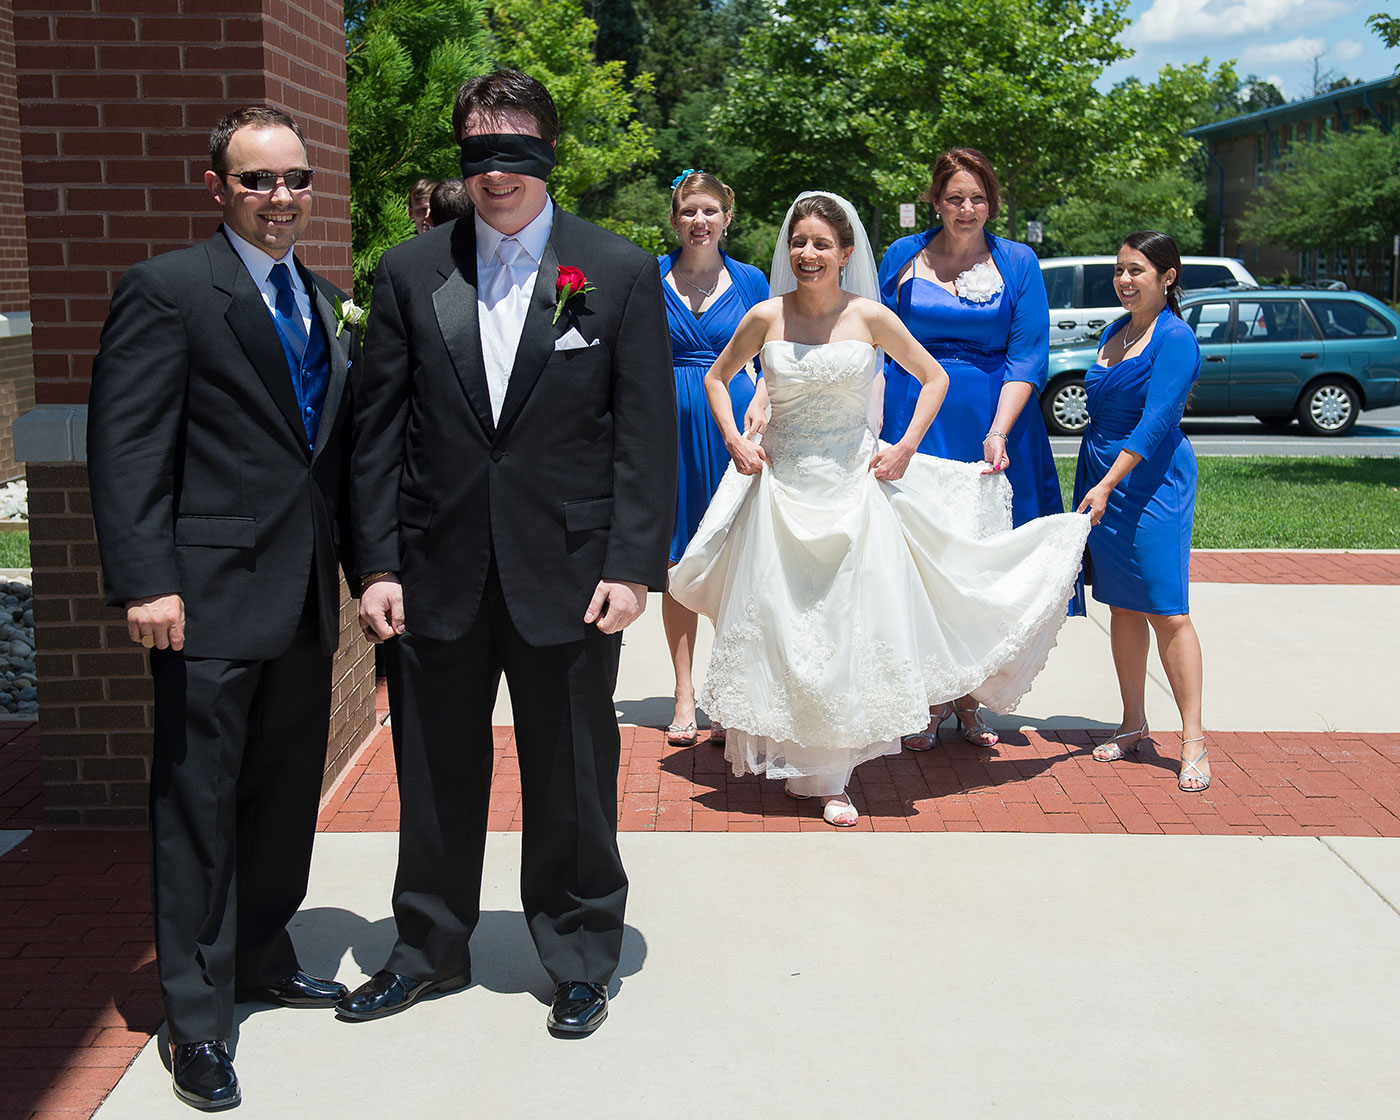 weddings-kelly-joe-gallery19